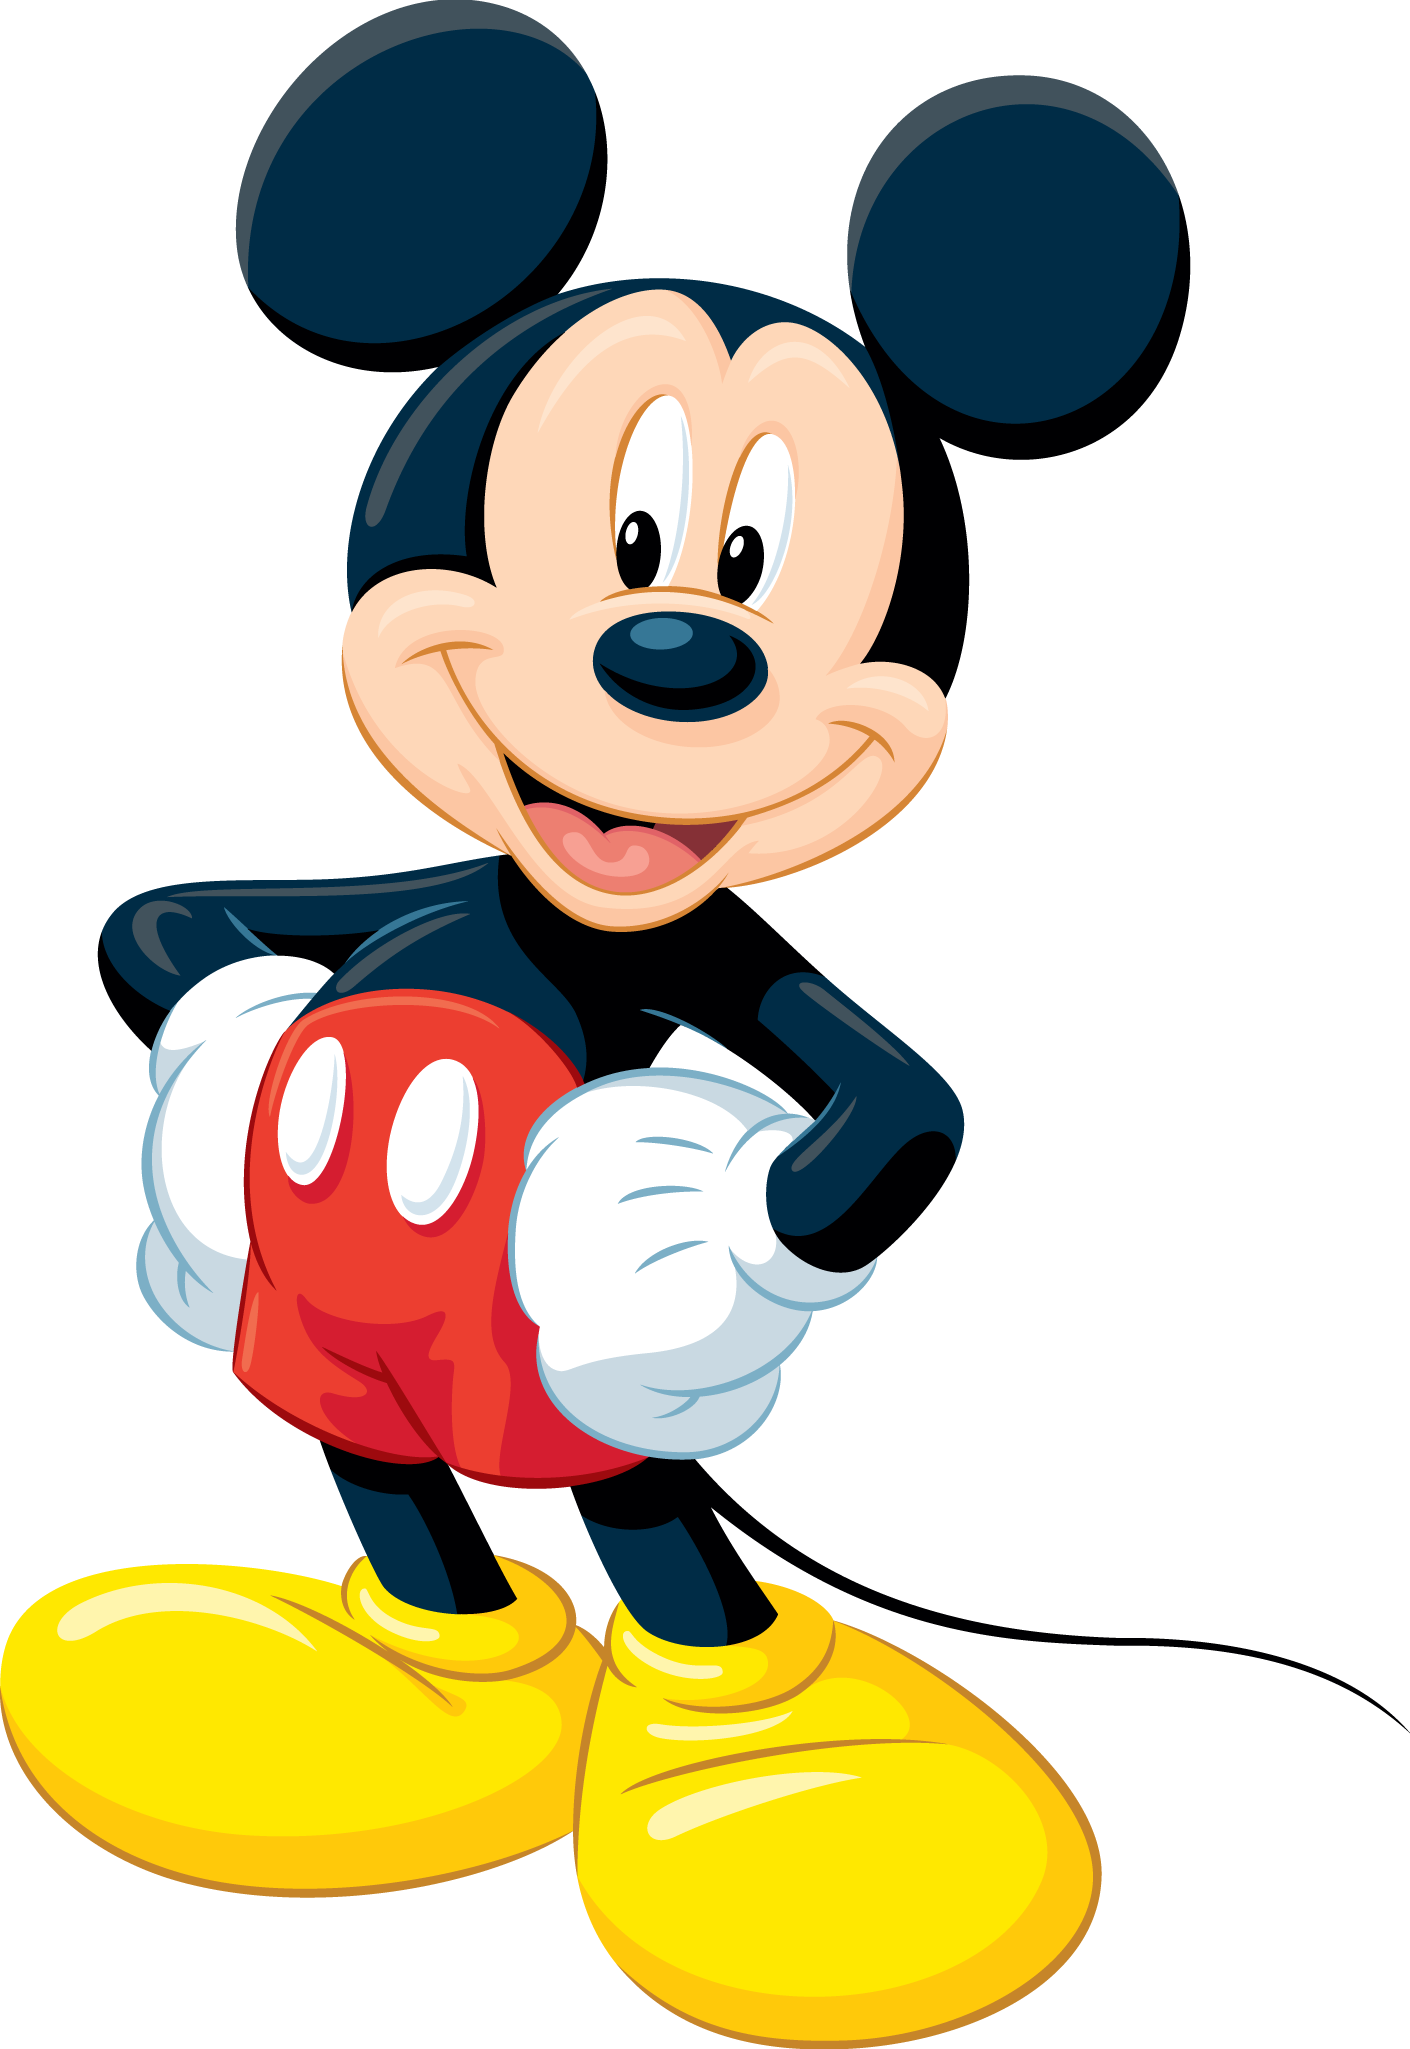 Mickey mouse png images. Sammies nd birthday pinterest